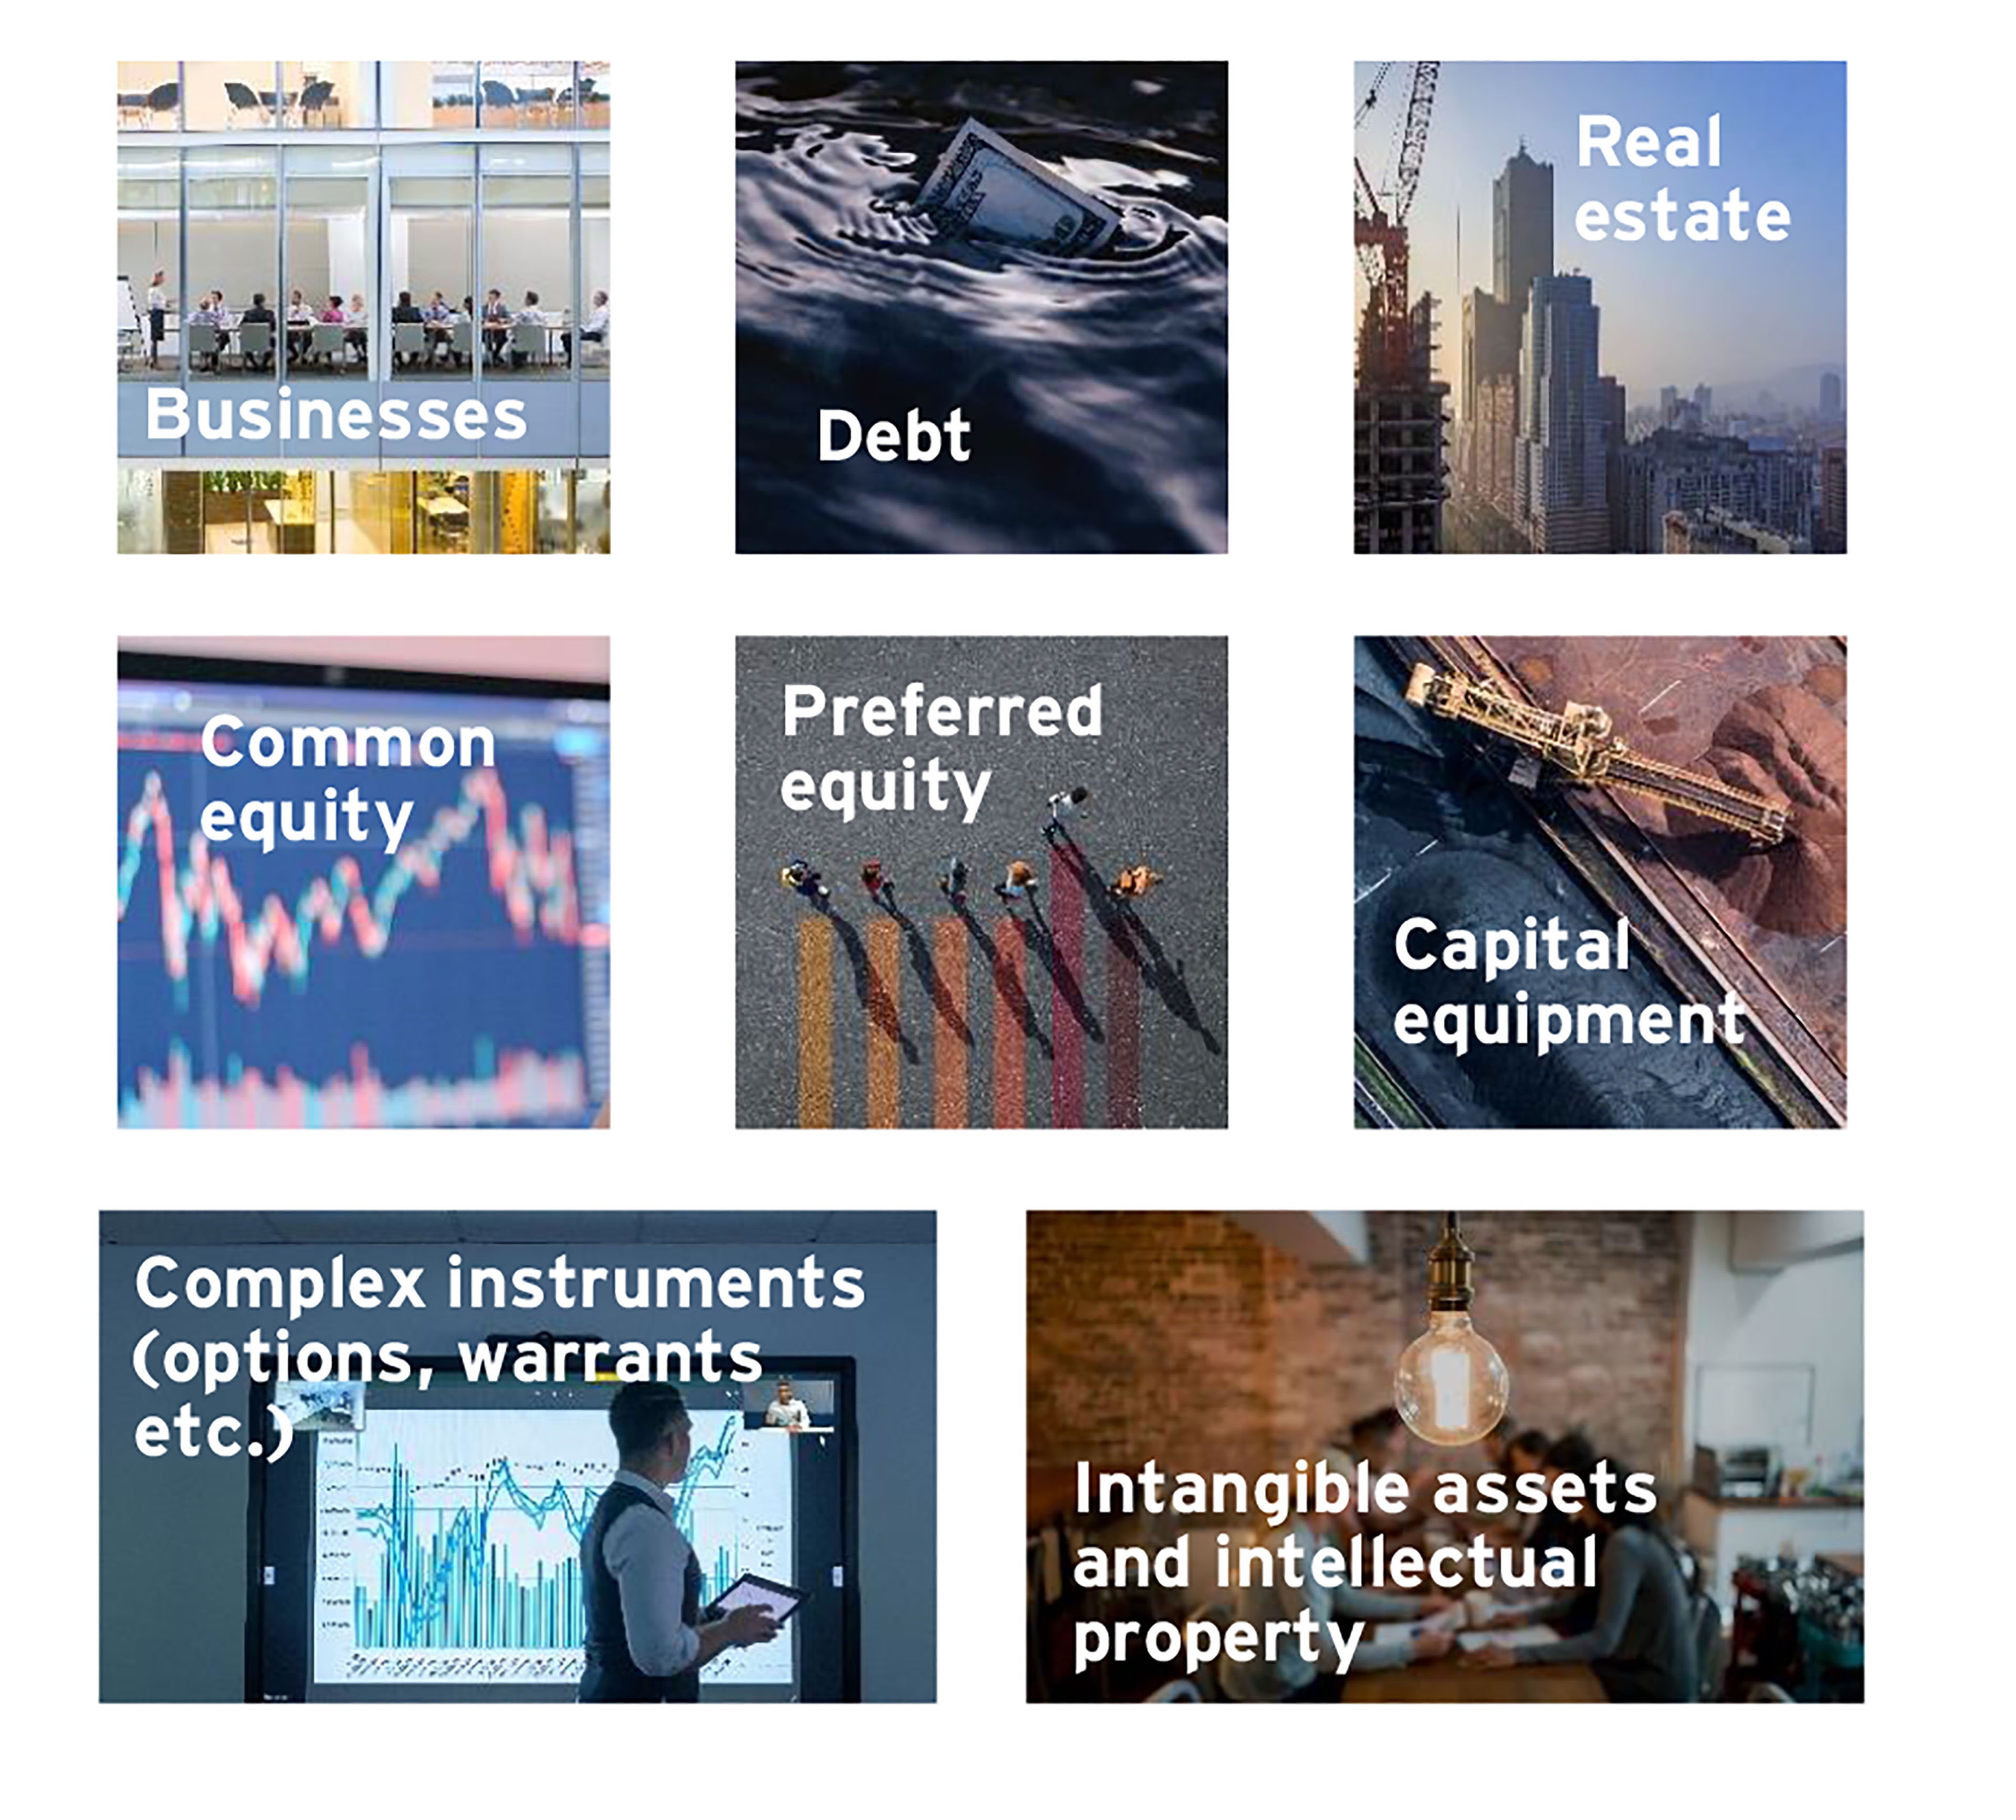 EY - Skills to value financial, tangible and intangible assets and intellectual property